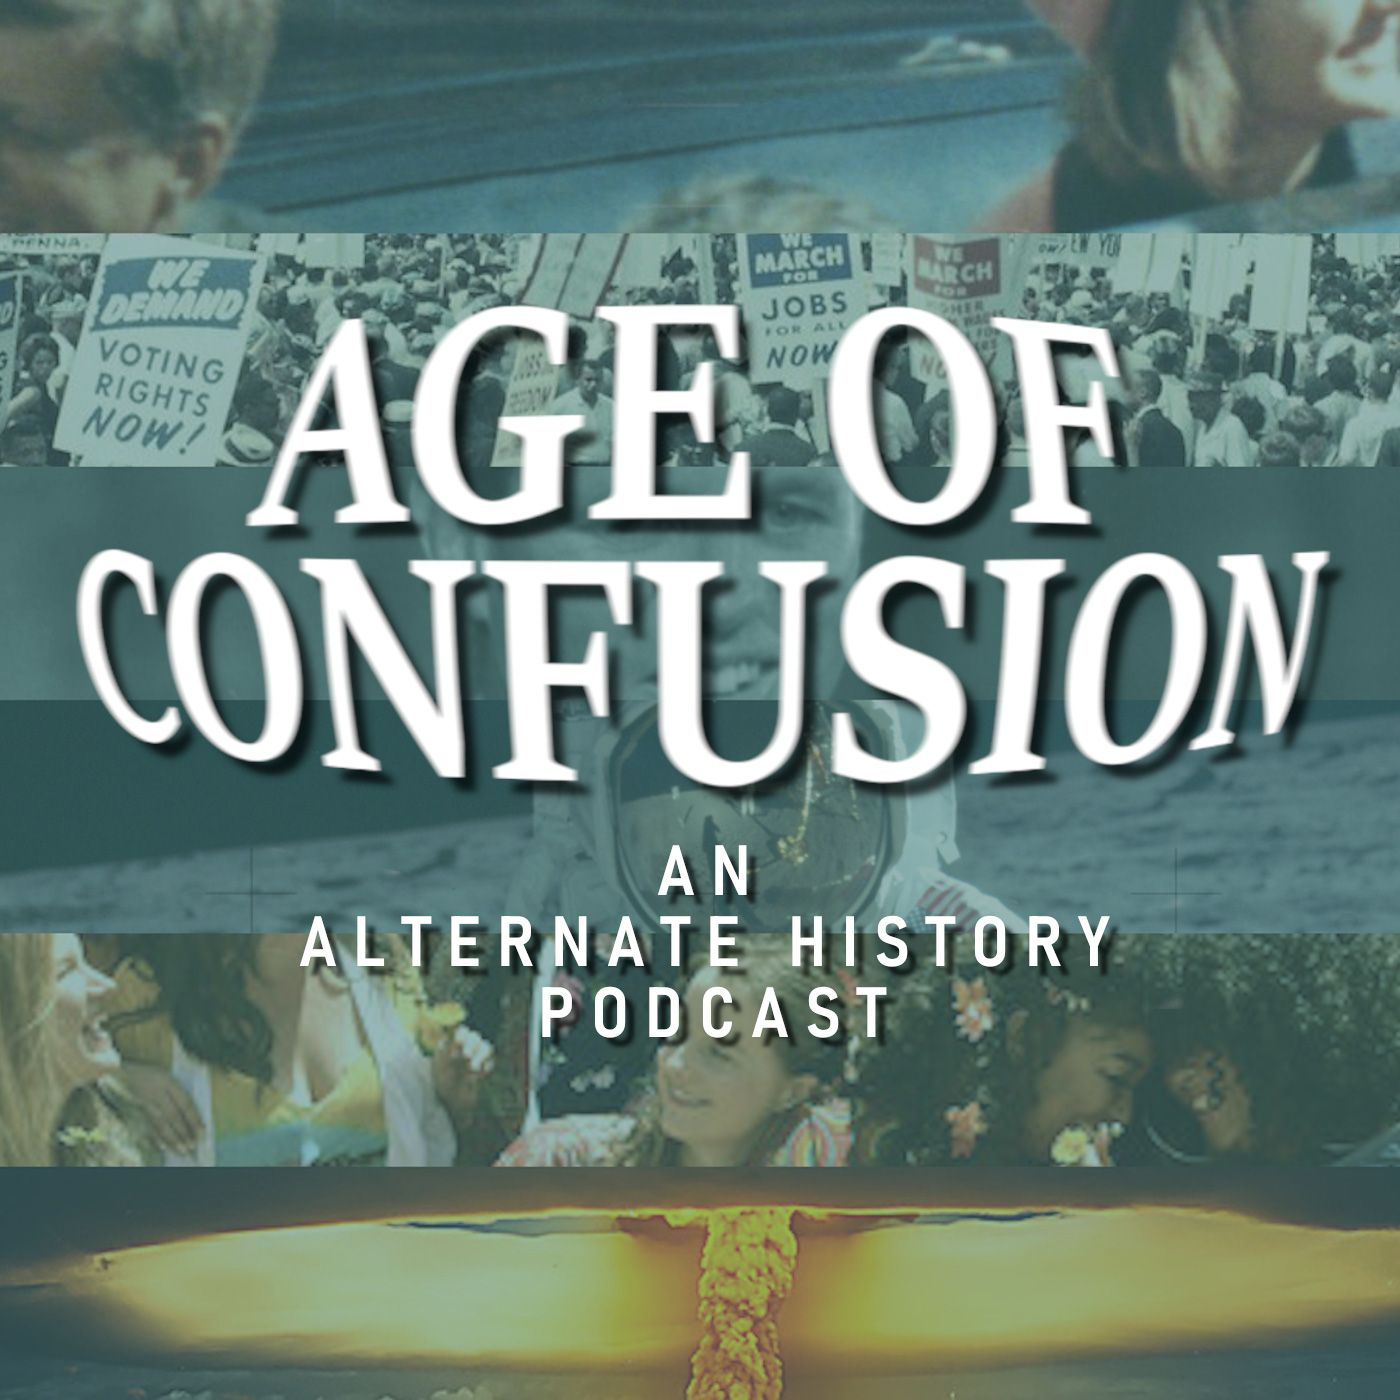 Bonus: Trailer for Age of Confusion Podcast